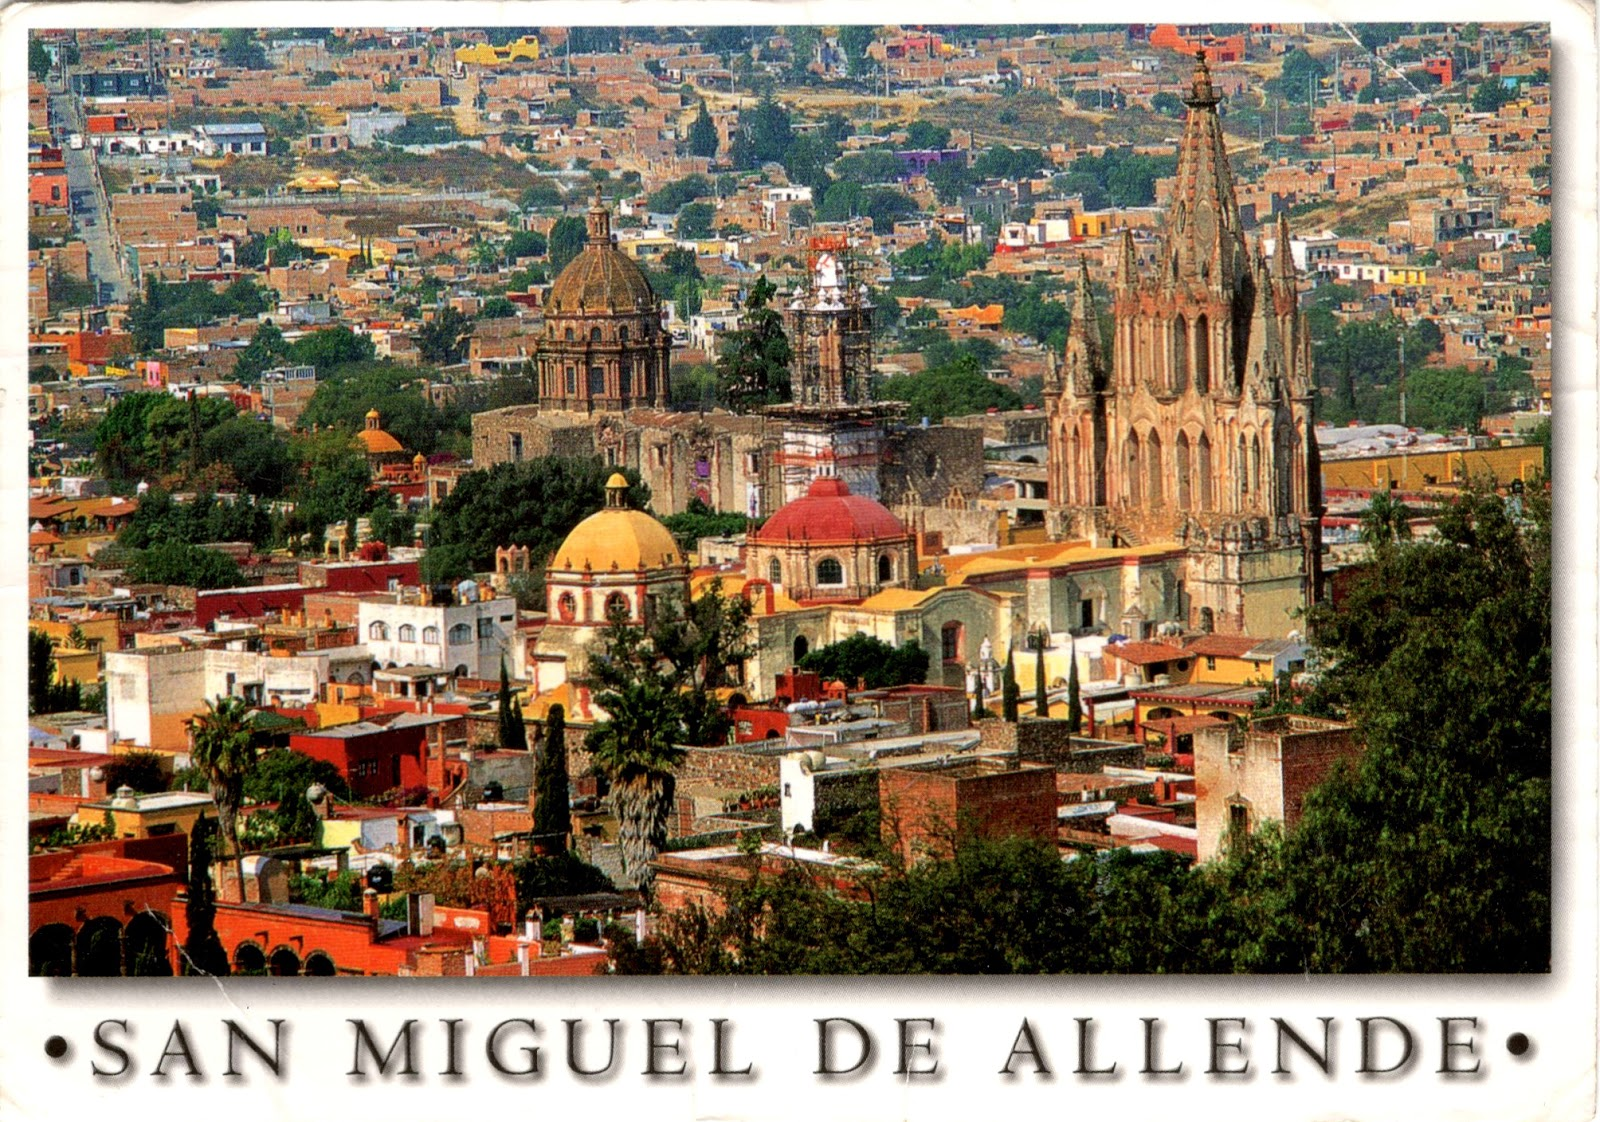 World Come To My Home 3154 Mexico Guanajuato San Miguel De Allende Part Of Protective Town Of San Miguel And The Sanctuary Of Jesús Nazareno De Atotonilco Unesco Whs